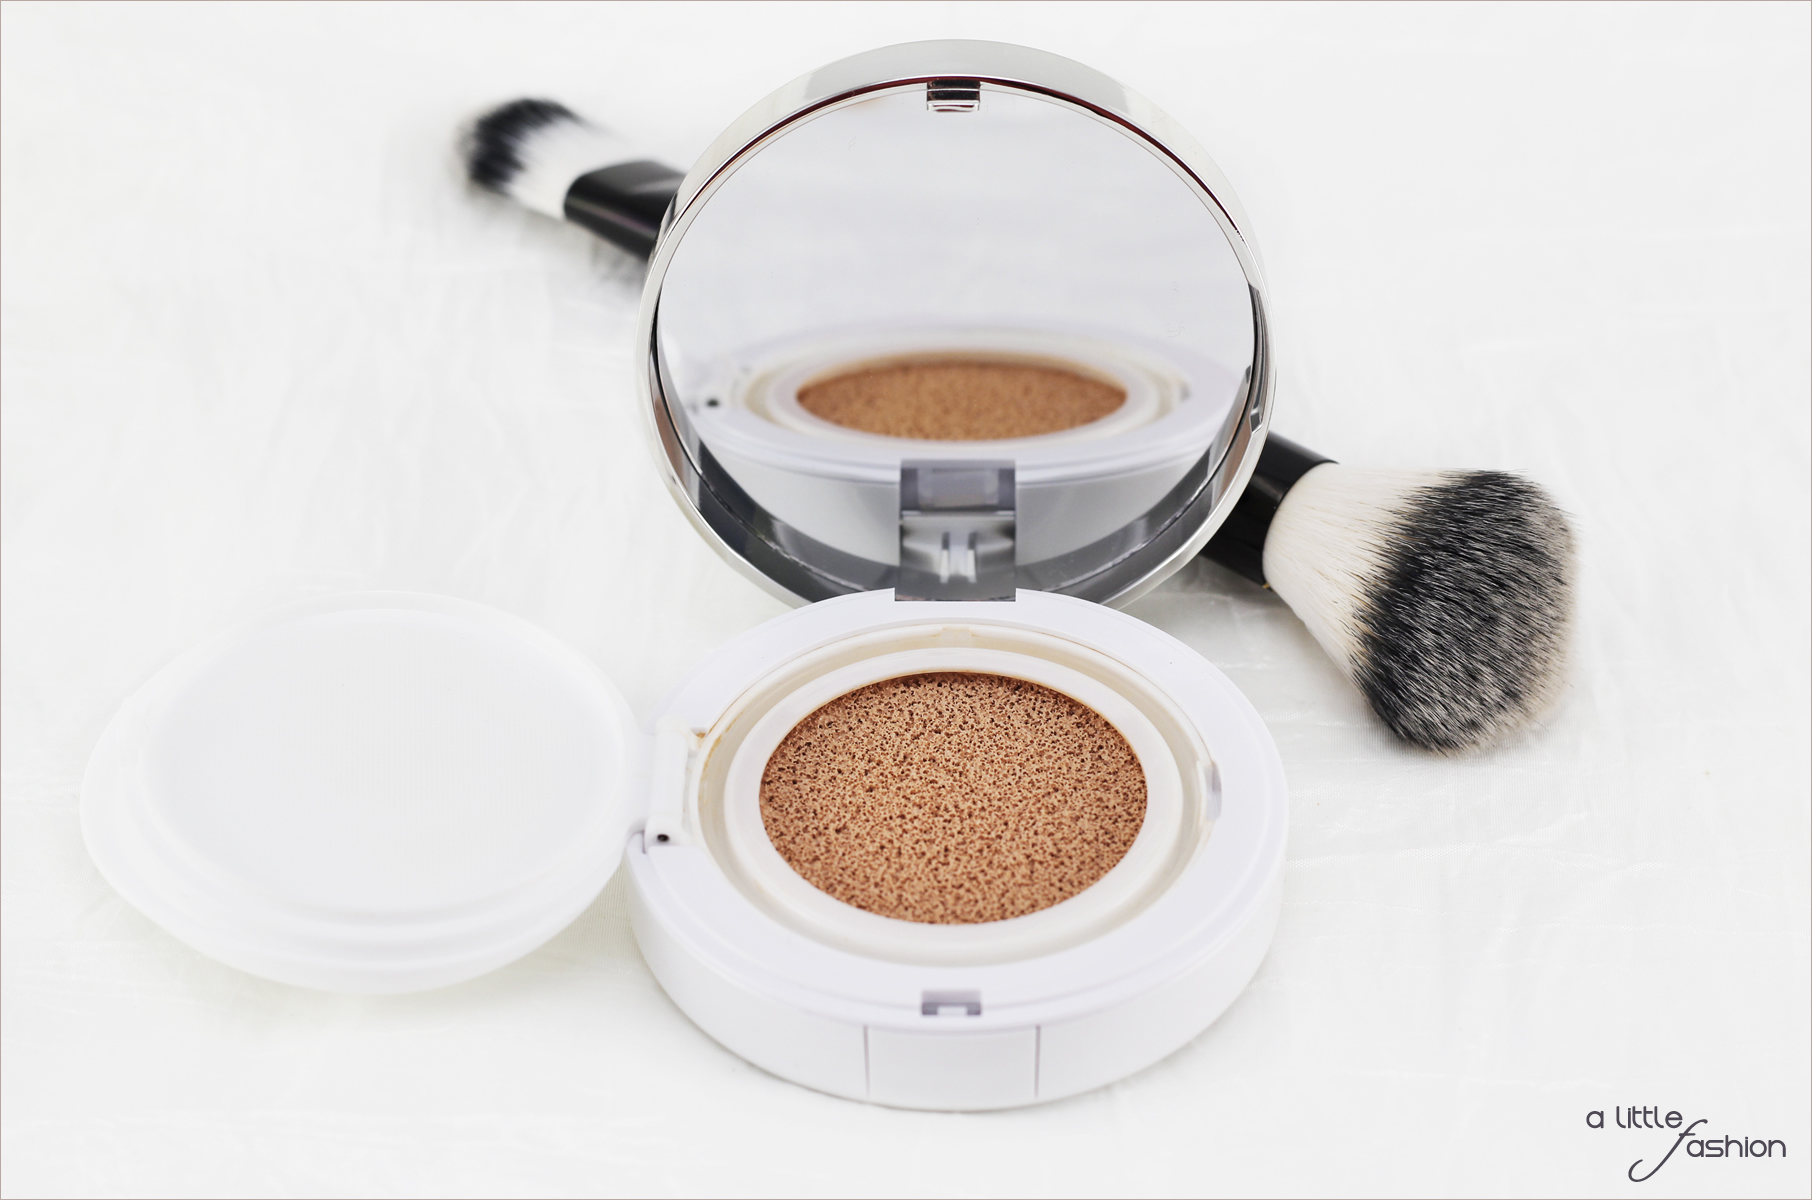 Lancôme Miracle Cushion Foundation  |  A Little Fashion - Das Lifestyle Blogazine  |  https://www.filizity.com/beauty/lancome-miracle-cushion-foundation